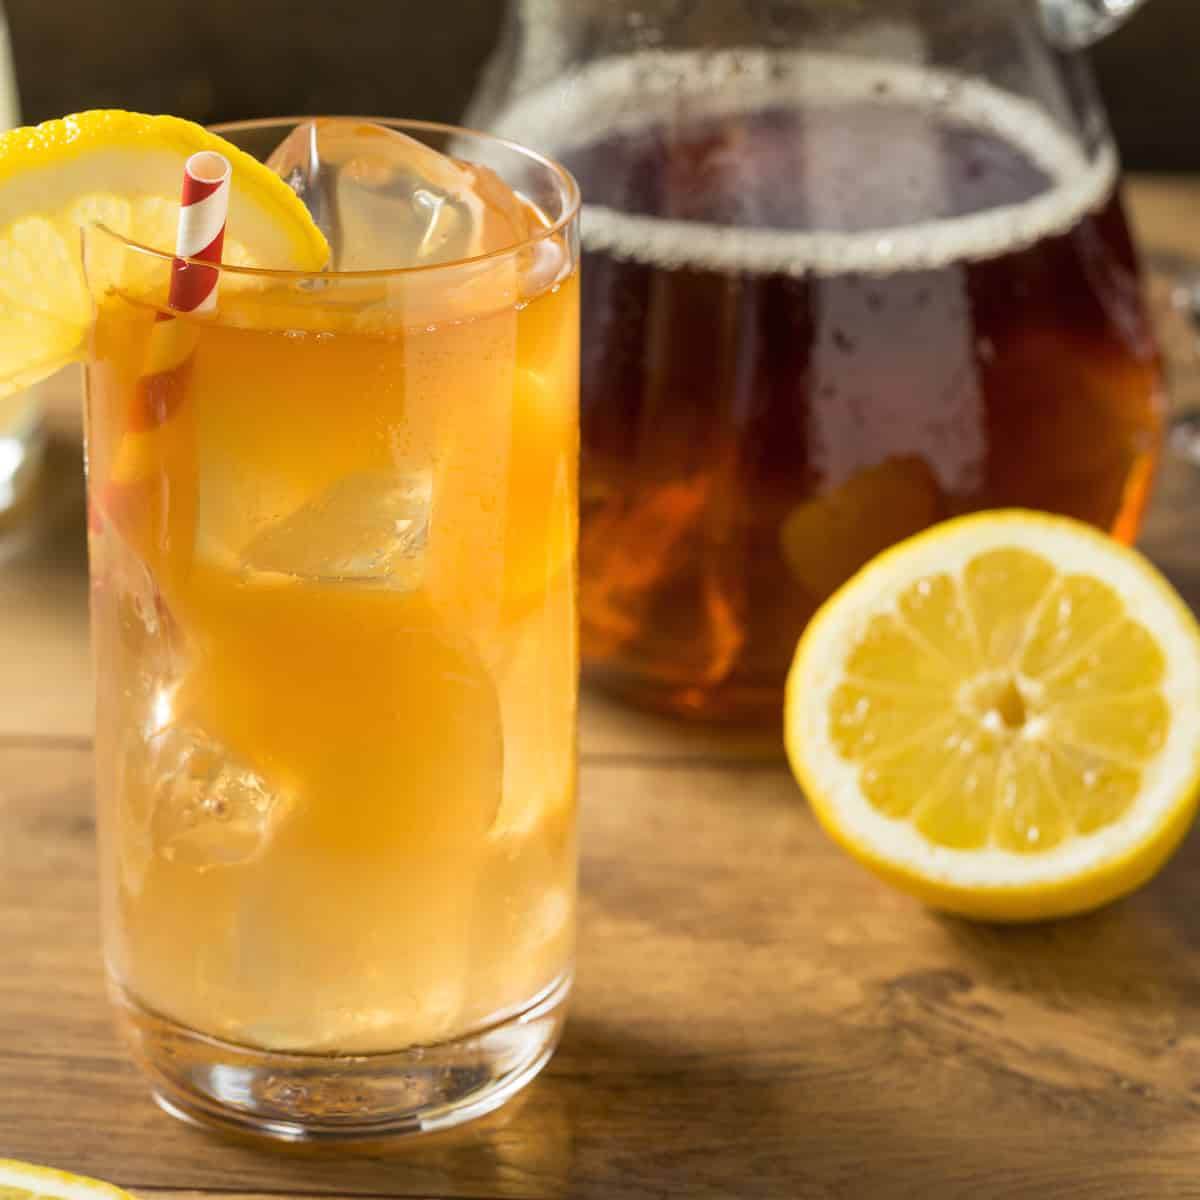 iced tea and lemonade with a pitcher of iced tea in the background